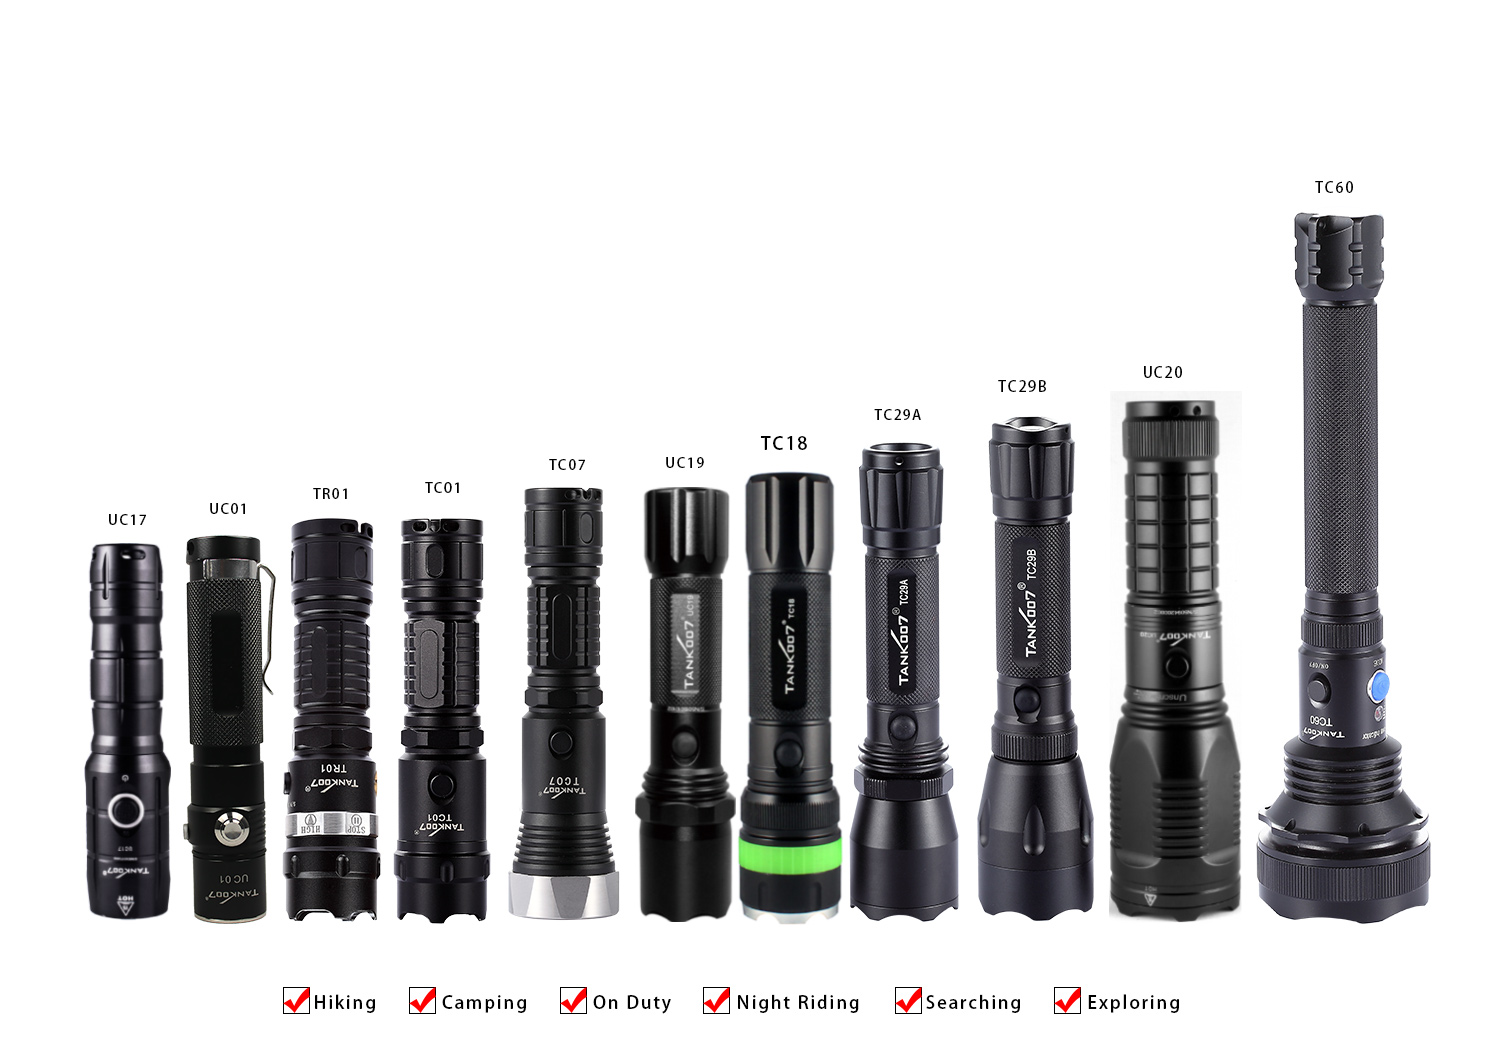 tank007-rechargeable-flashlight-overview.jpg